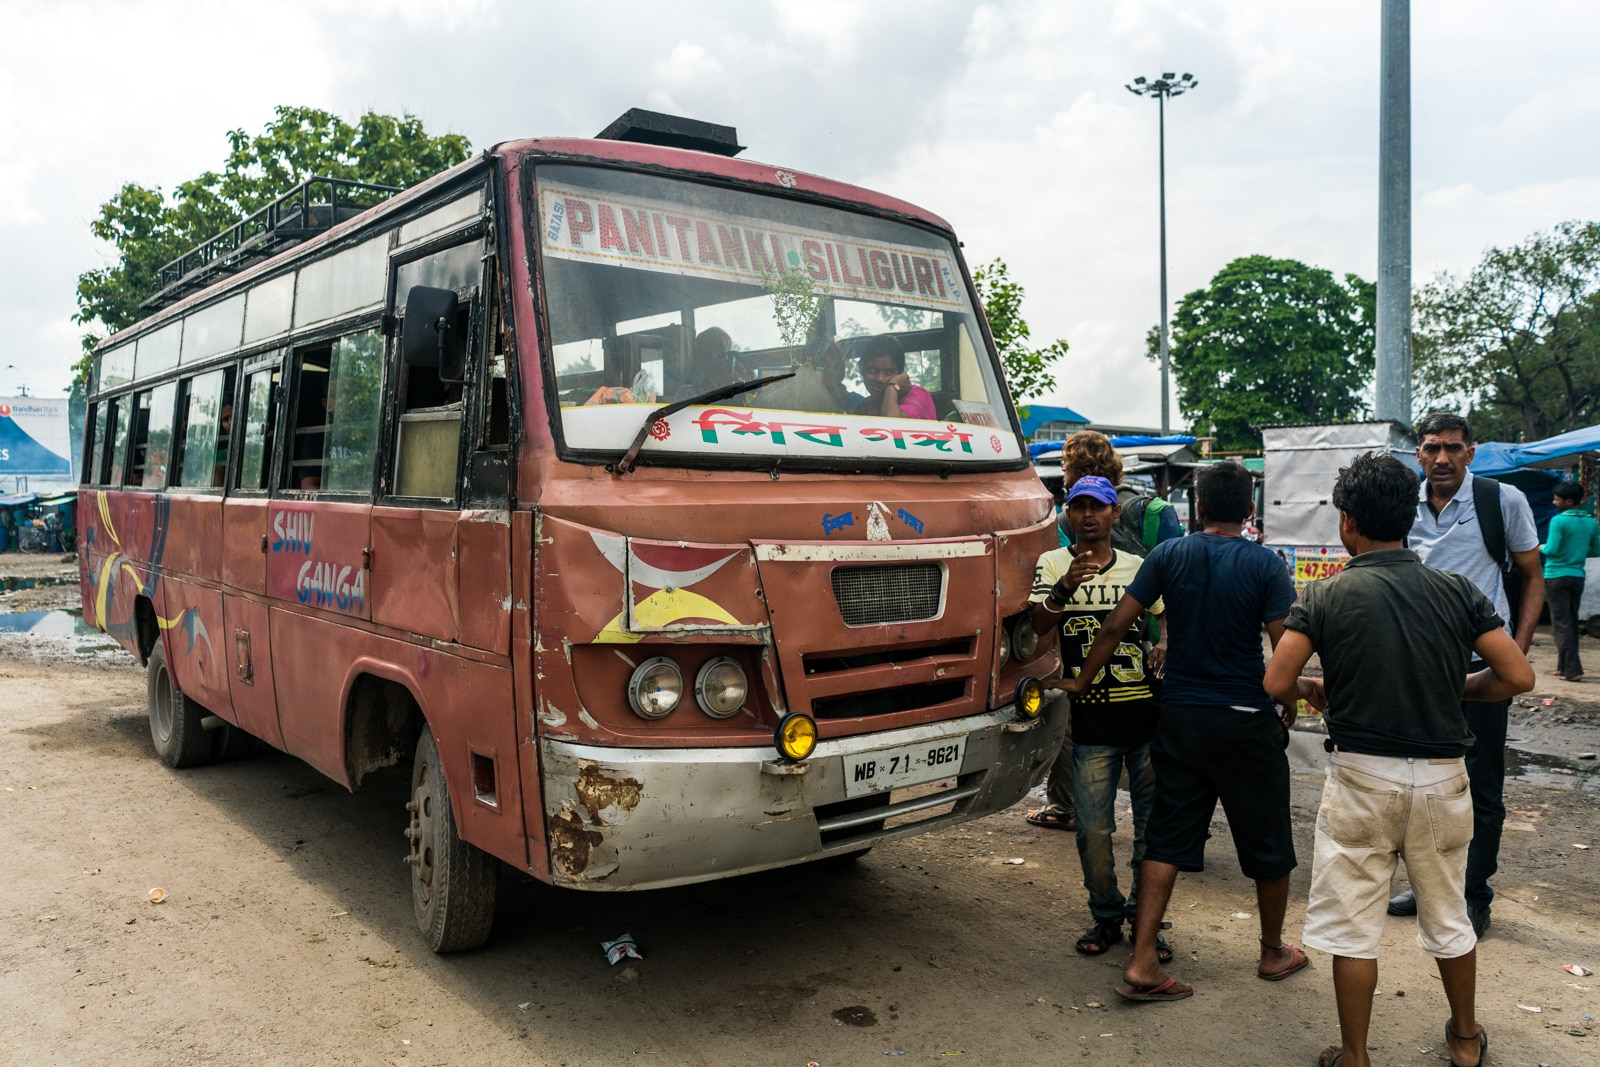 India - Nepal border crossing at Panitanki - Kakarbhitta - Bus to the border from NJP railway station - Lost With Purpose